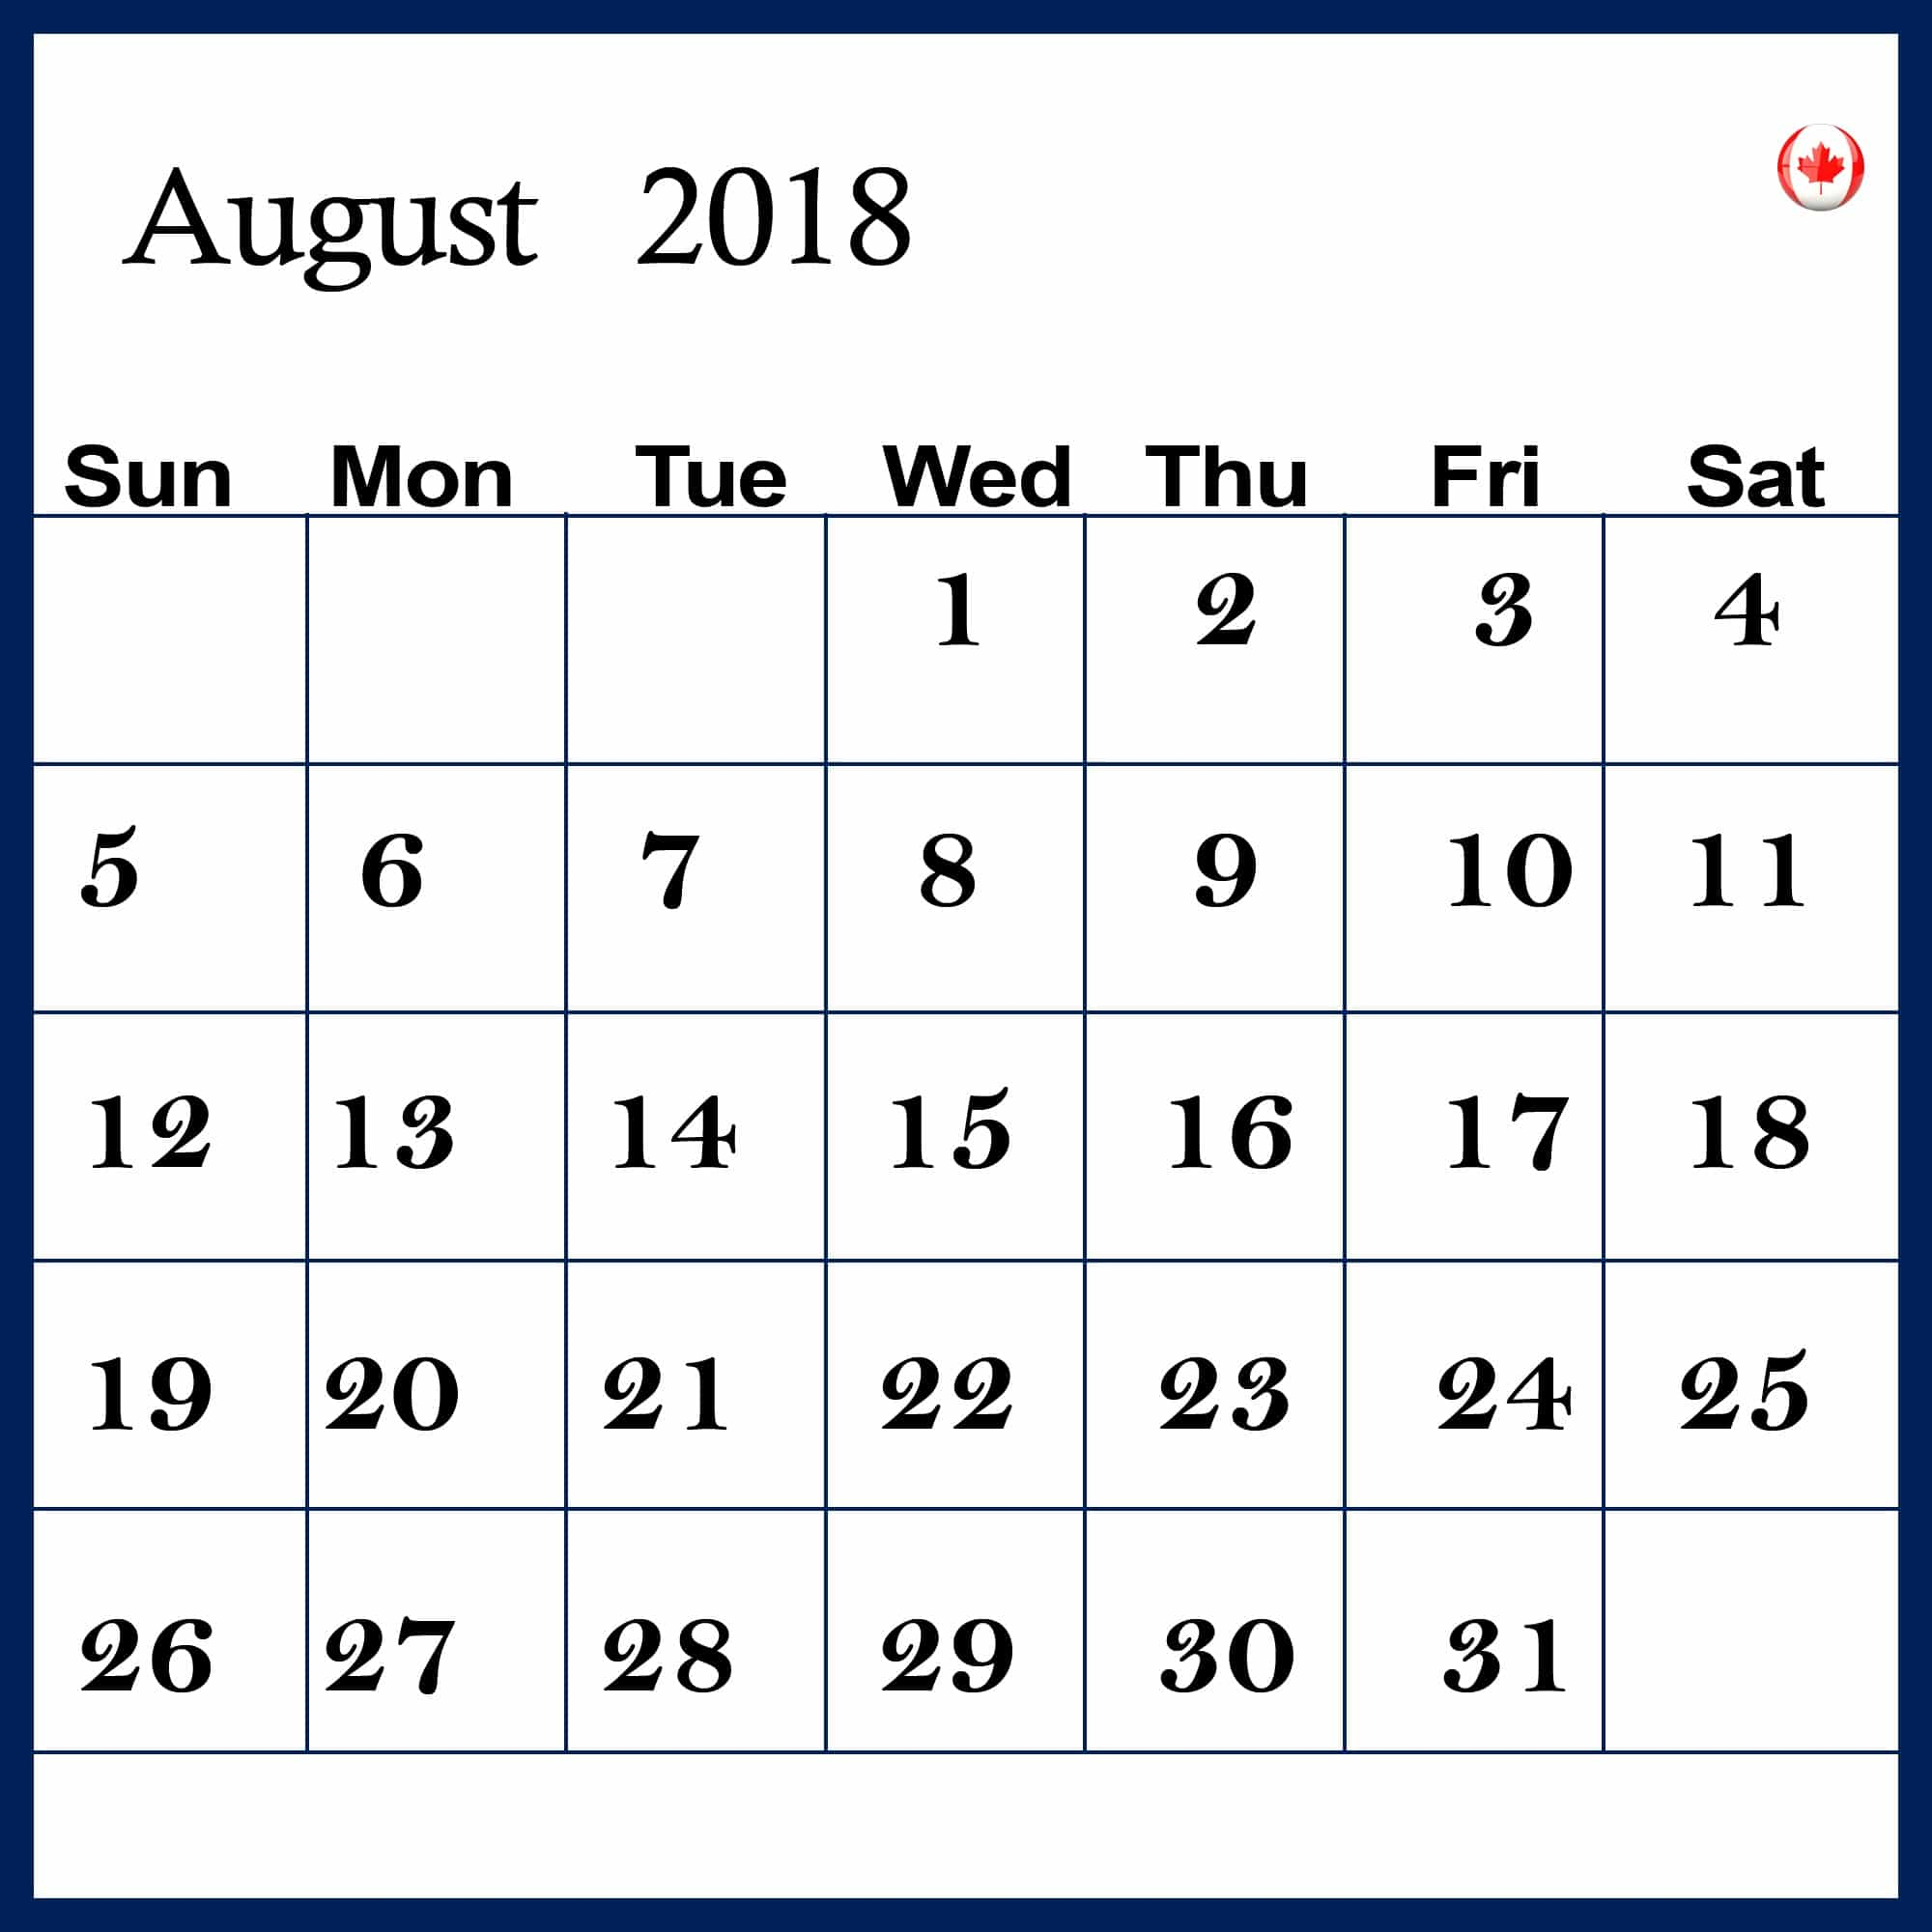 August 2018 Calendar With Holidays